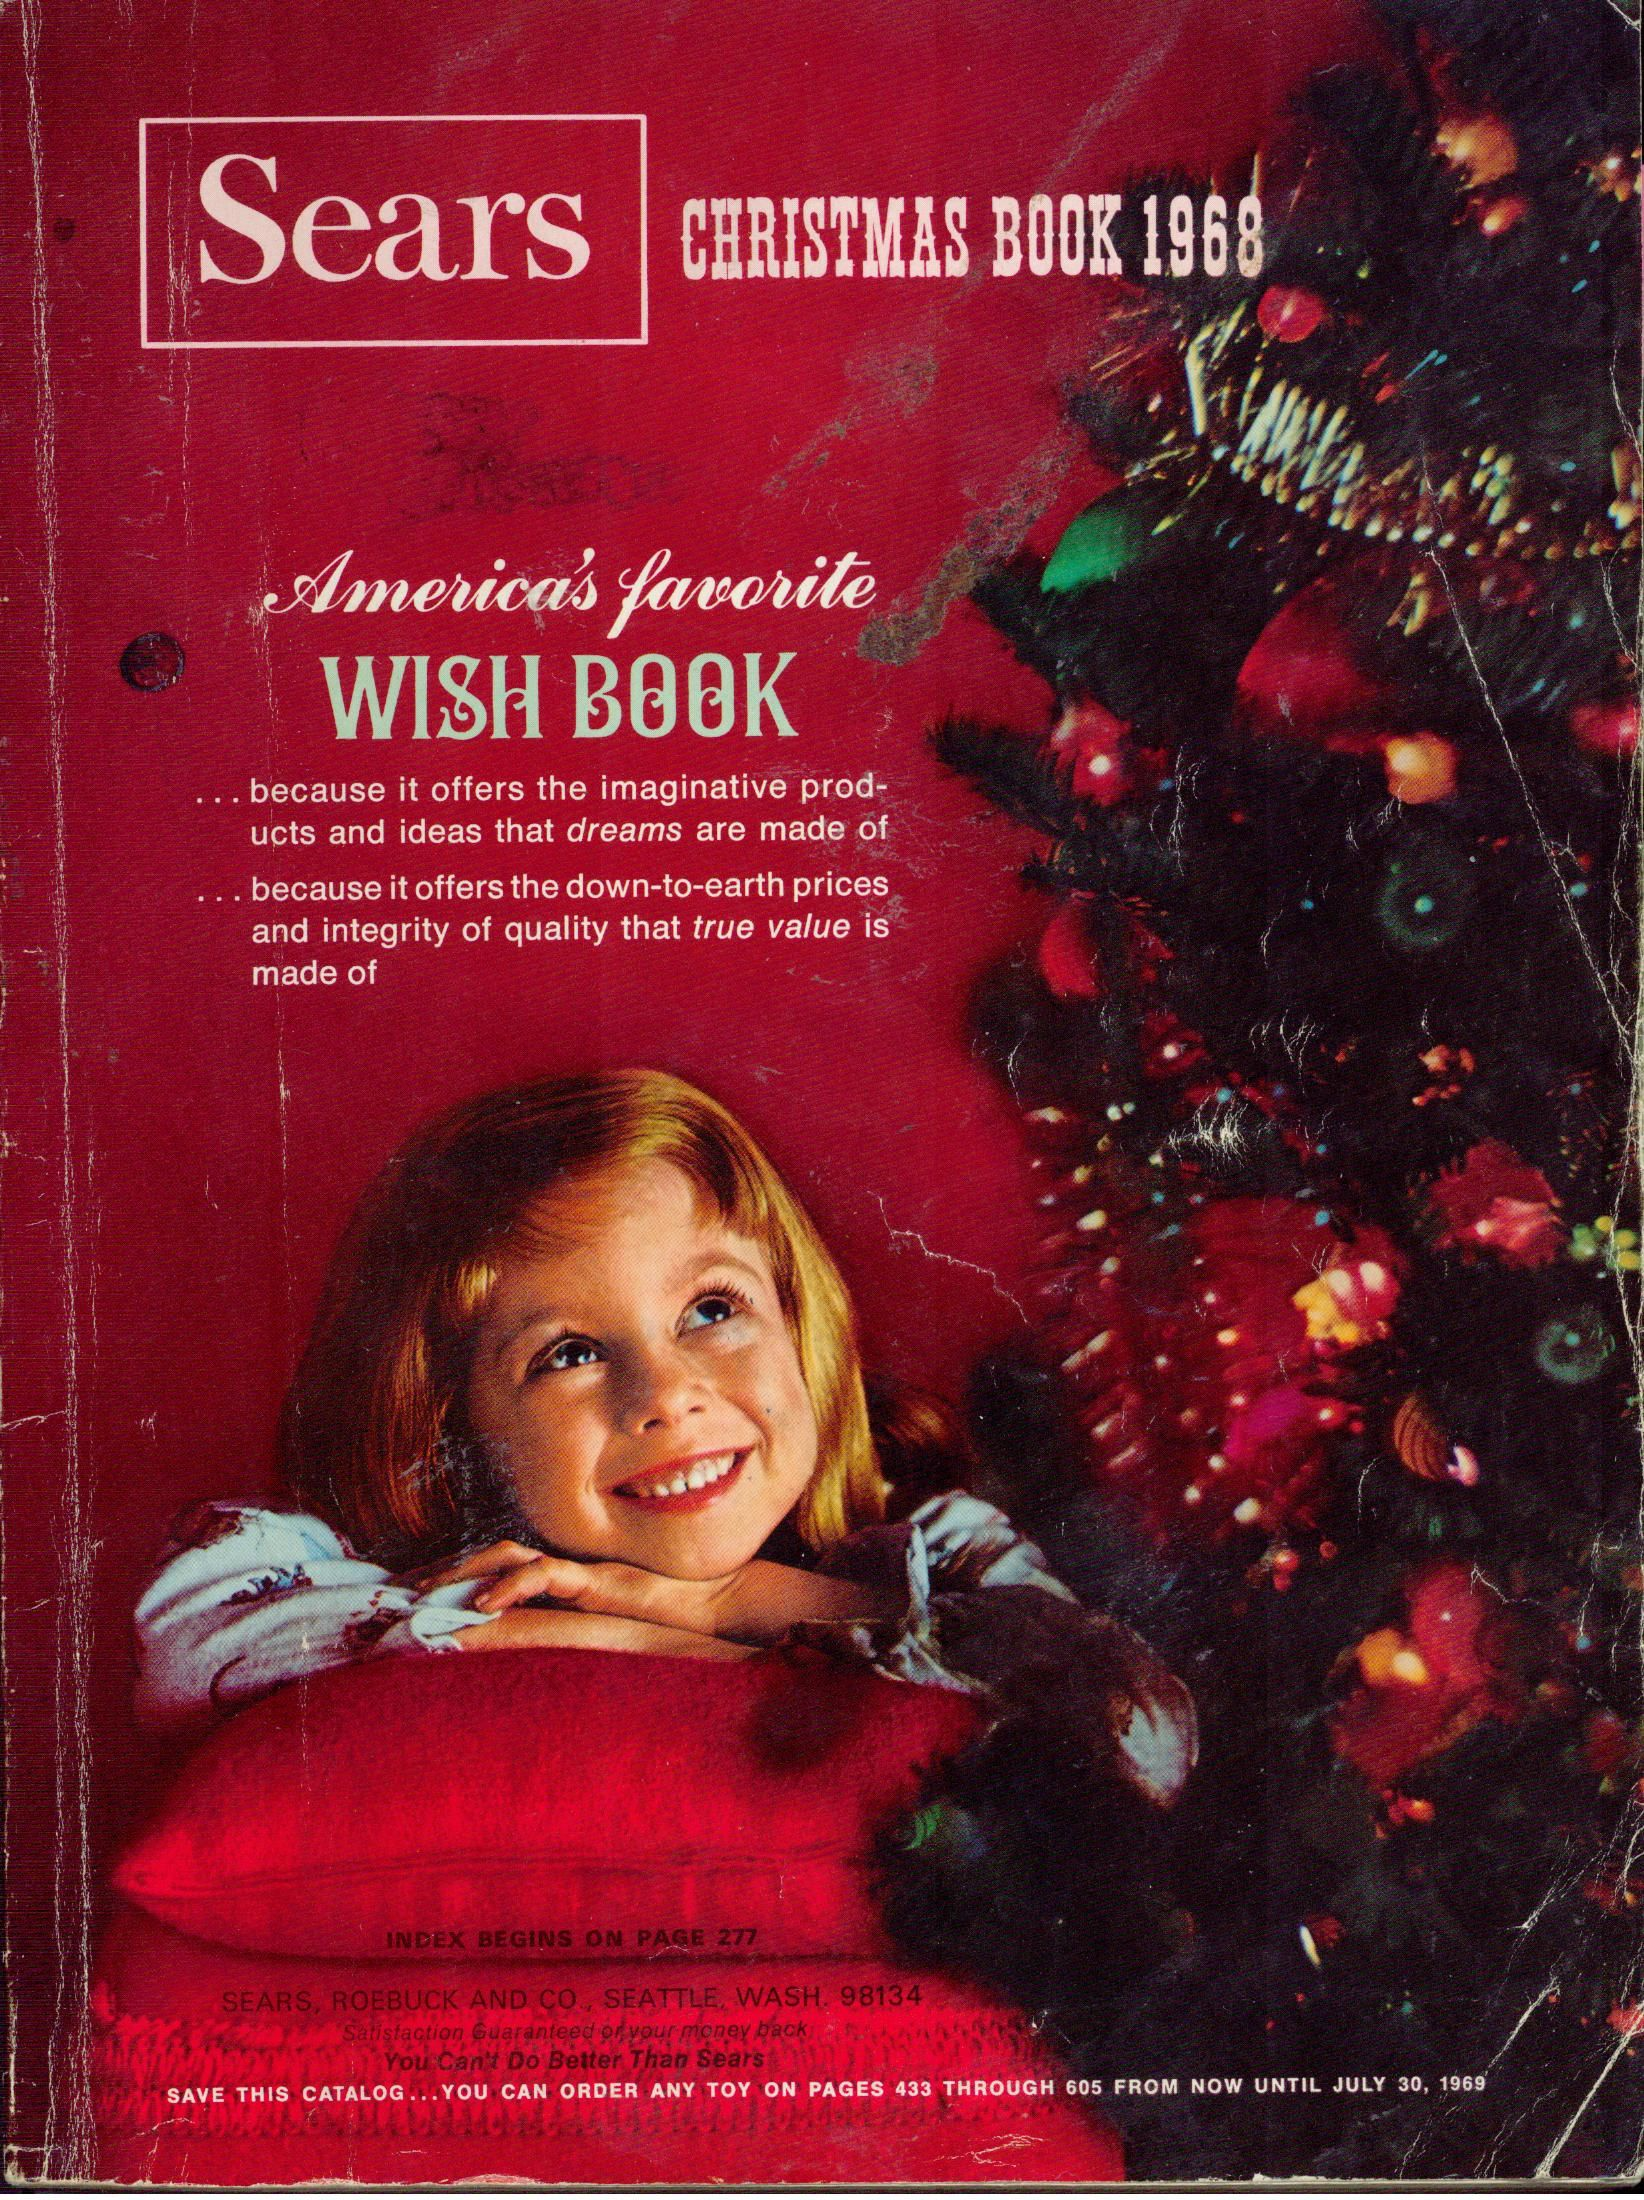 f6cc0b4efac1 Finnfemme: My 2012 Wish List from the 1968 Sears Christmas Wish Book. I  picked some pretty groovy things!